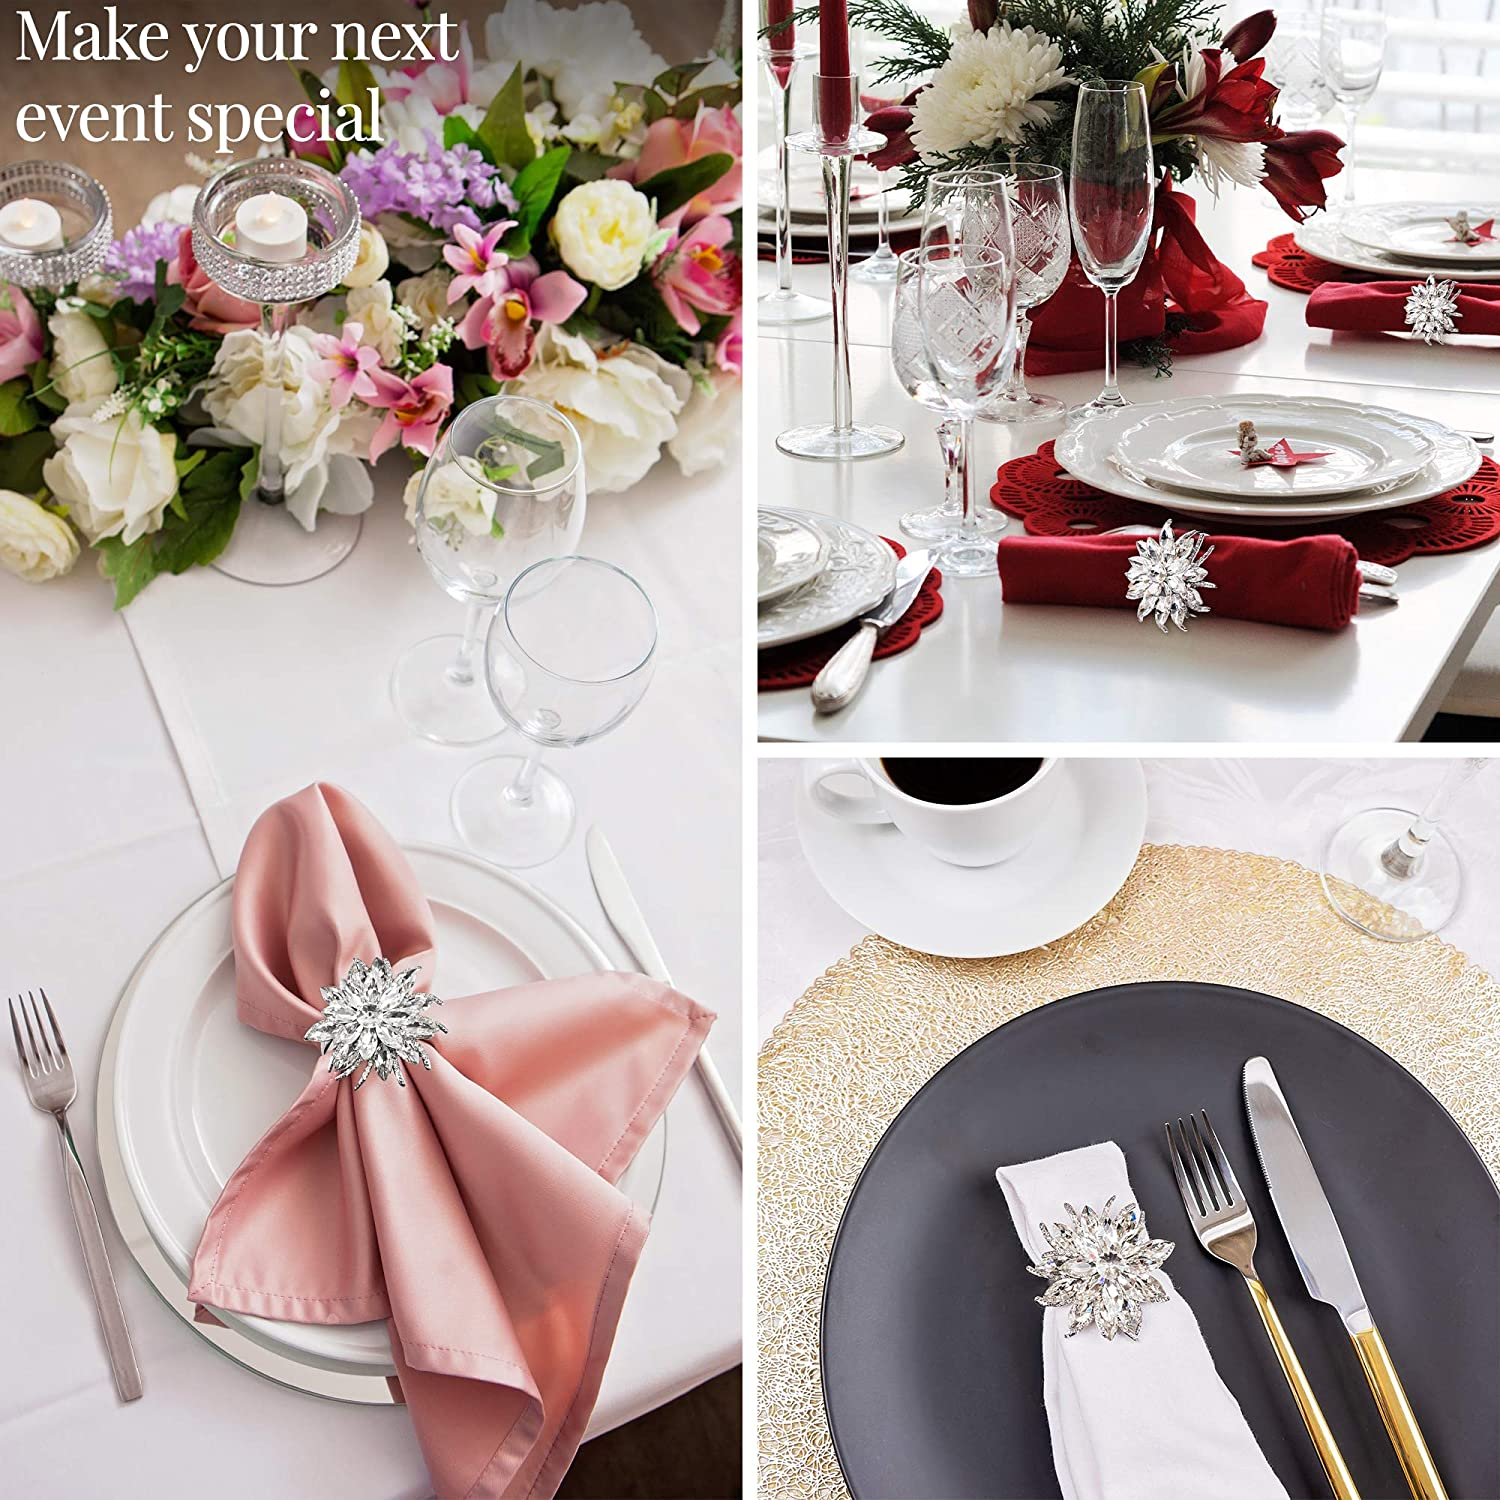 6 Pcs Luxury Table Napkins Round Serviette Buckles Holder Reusable with Delicate Unique Pattern Lotus Flower for Wedding Dining Kitchen Decor Birthday Christmas Party Napkin Rings Metal Silver Set